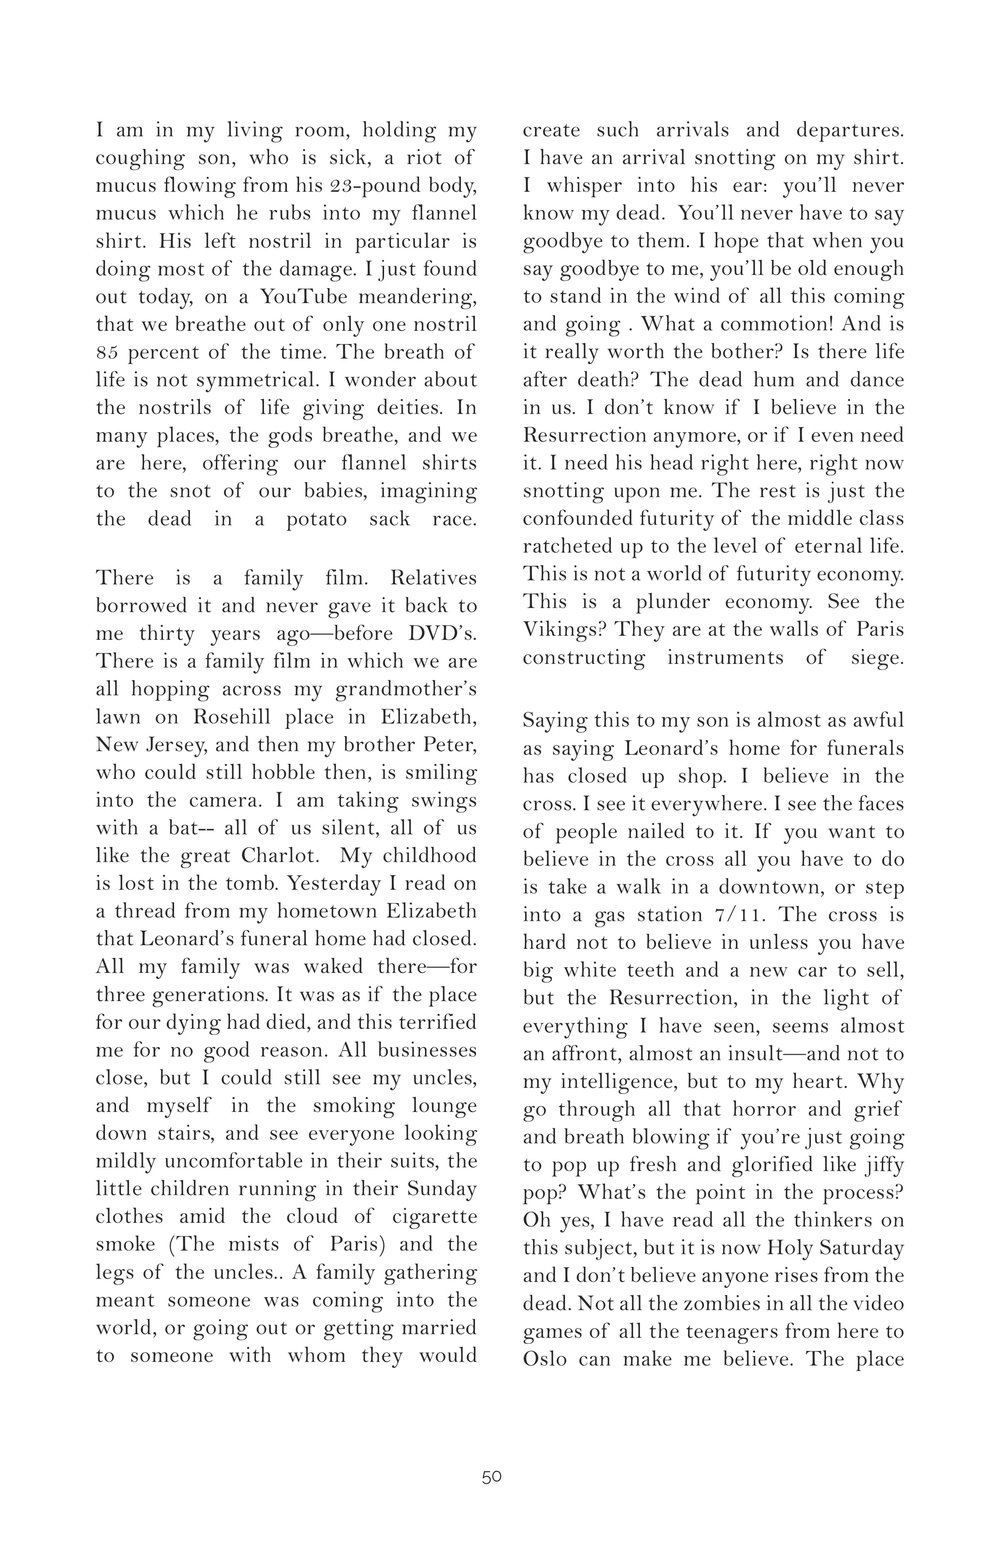 Shrew Issue 2 Part 4 D1-09.jpg